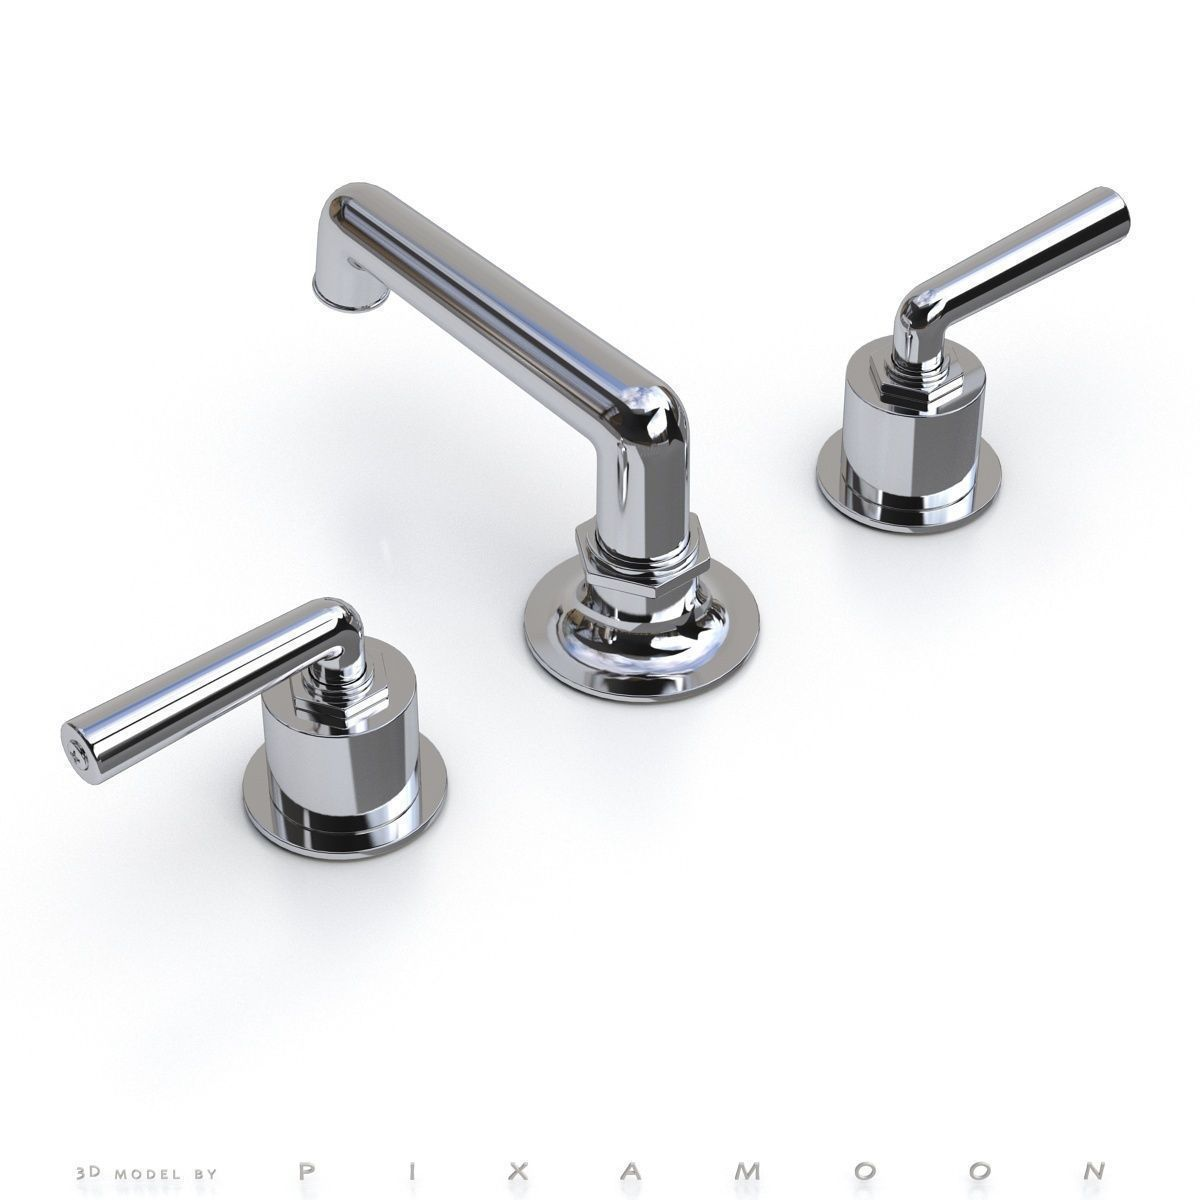 waterworks henry kitchen faucet - 28 images - 10 easy pieces modern ...